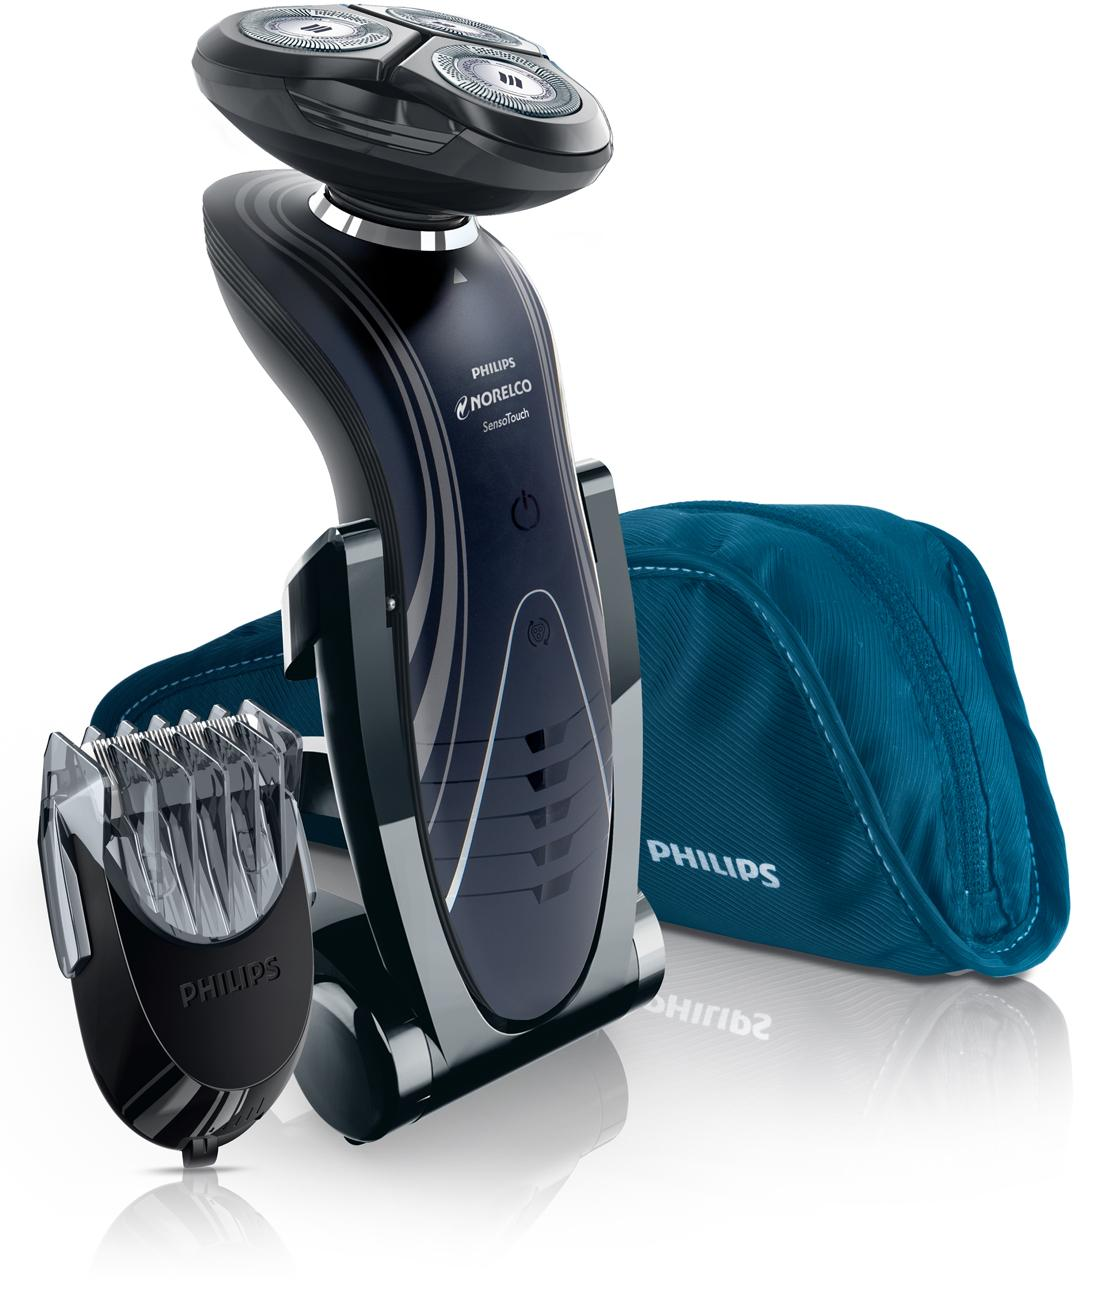 Best Electric Shaver >> Amazon.com: Philips Norelco Shaver 6800 (Model 1190X/46): Beauty